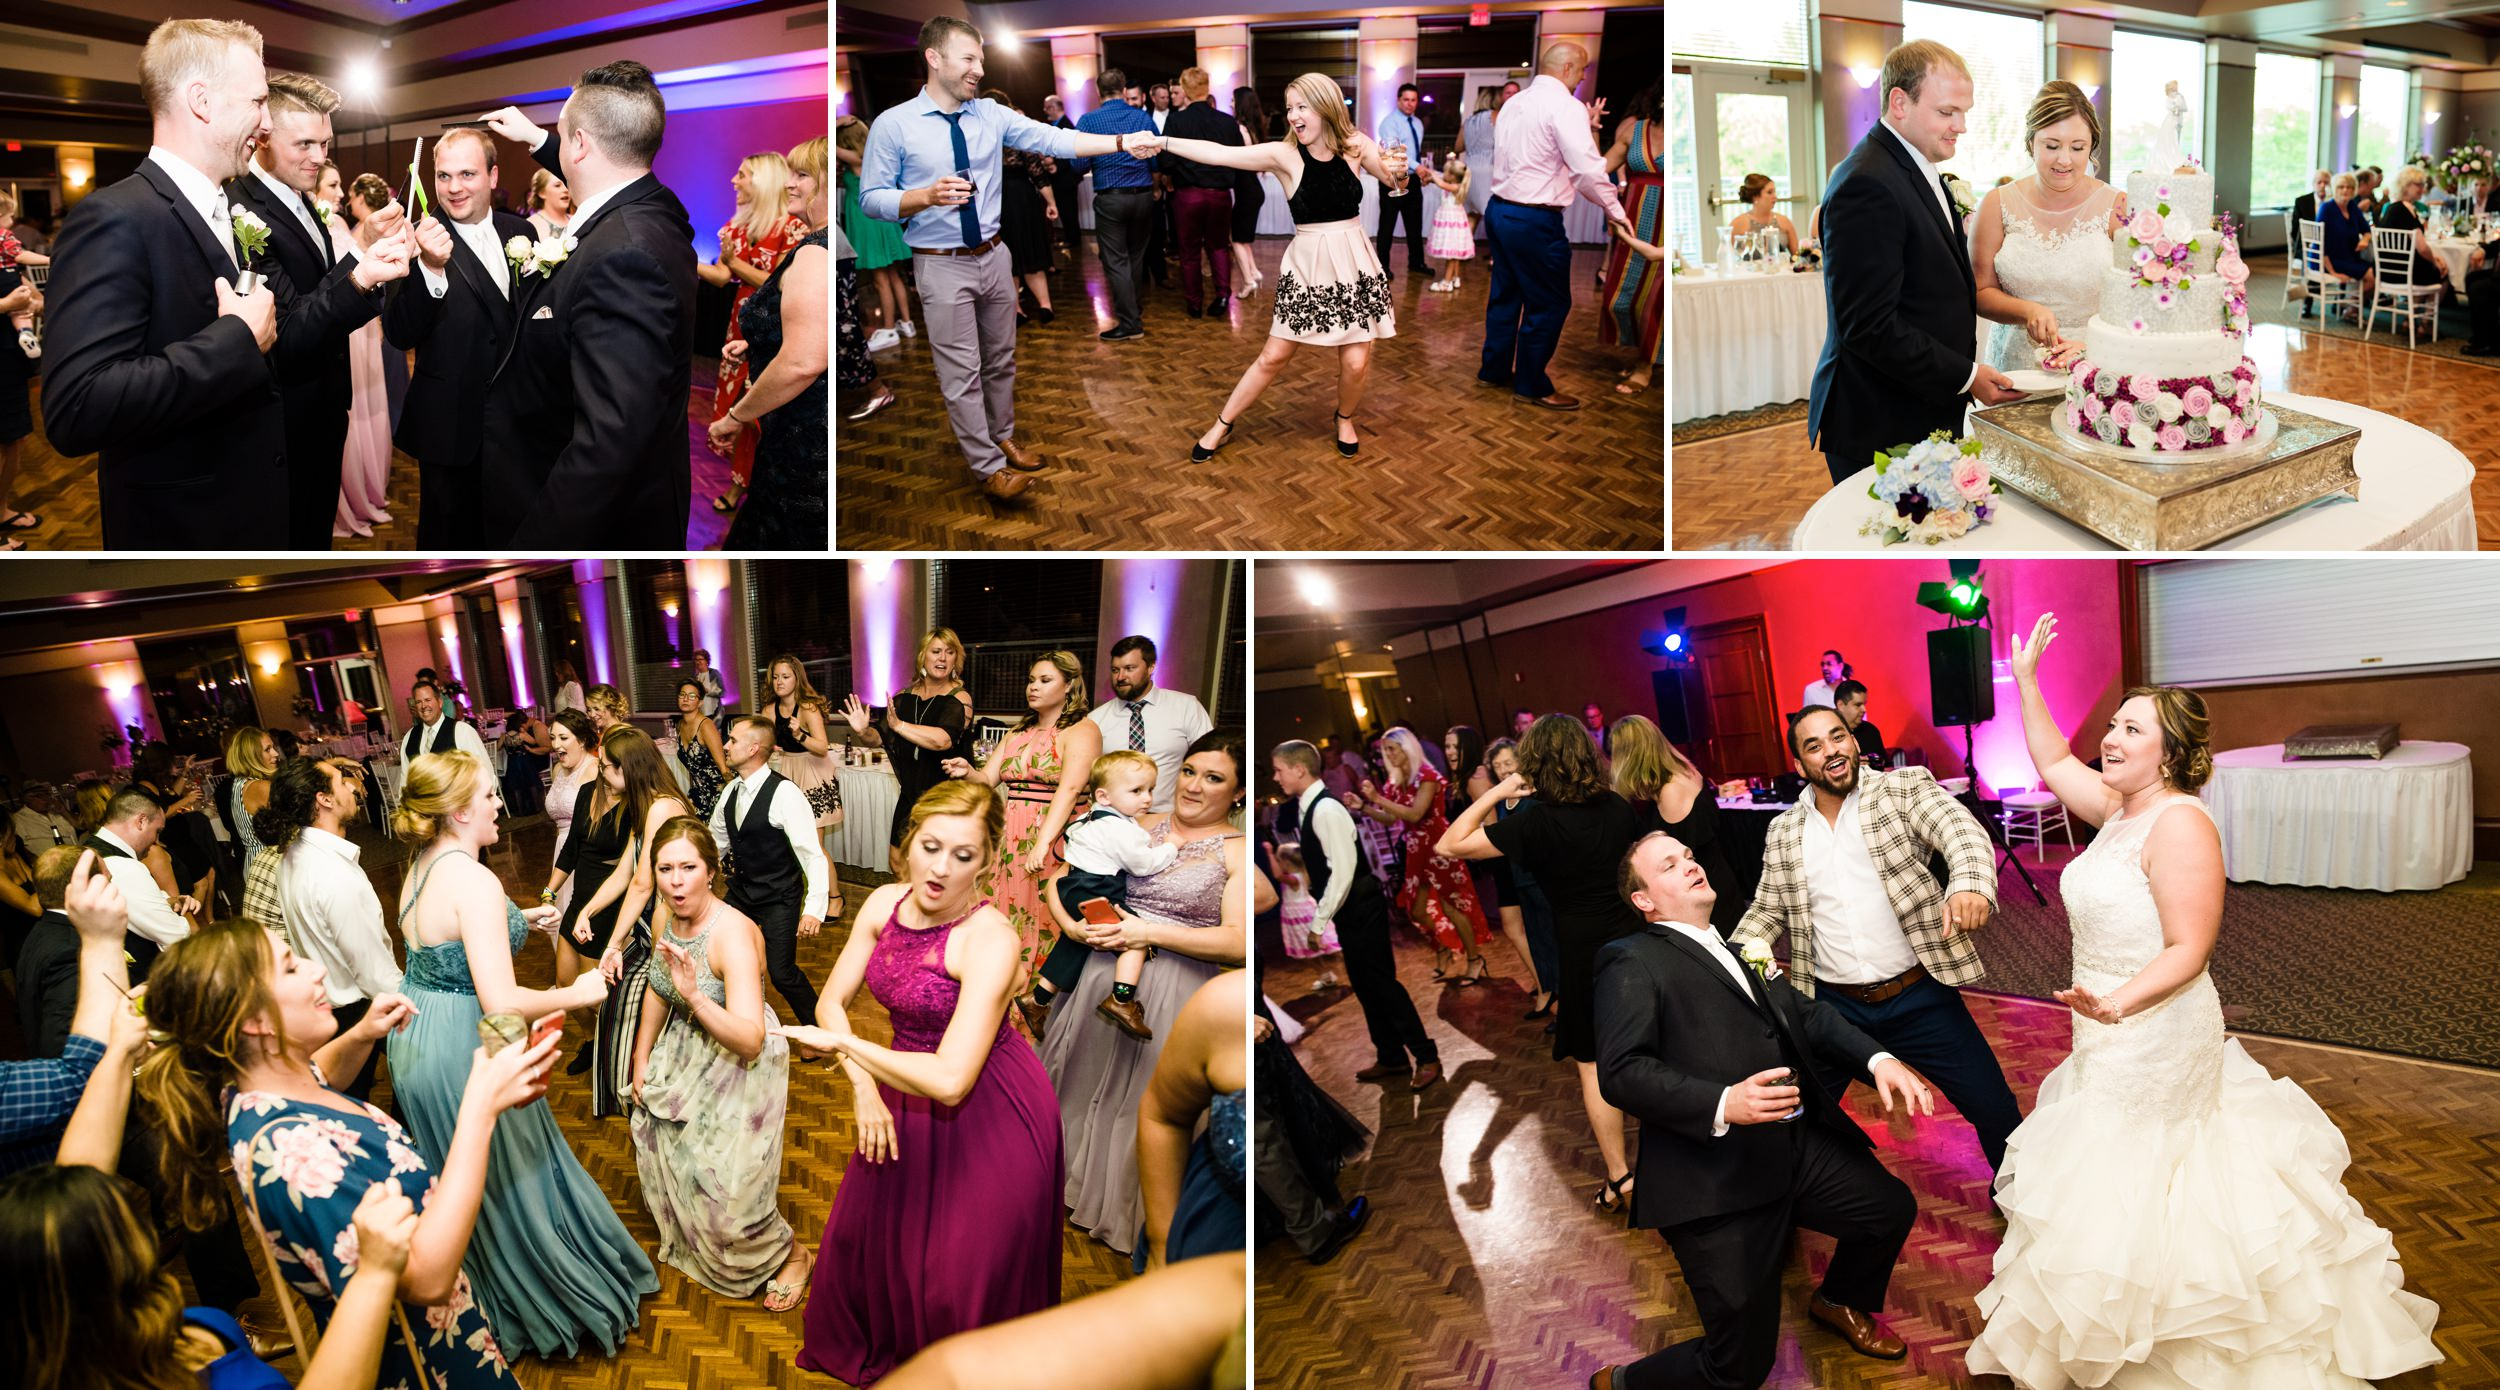 Wedding reception fun inside the ballroom at Sand Creek Country Club wedding venue.